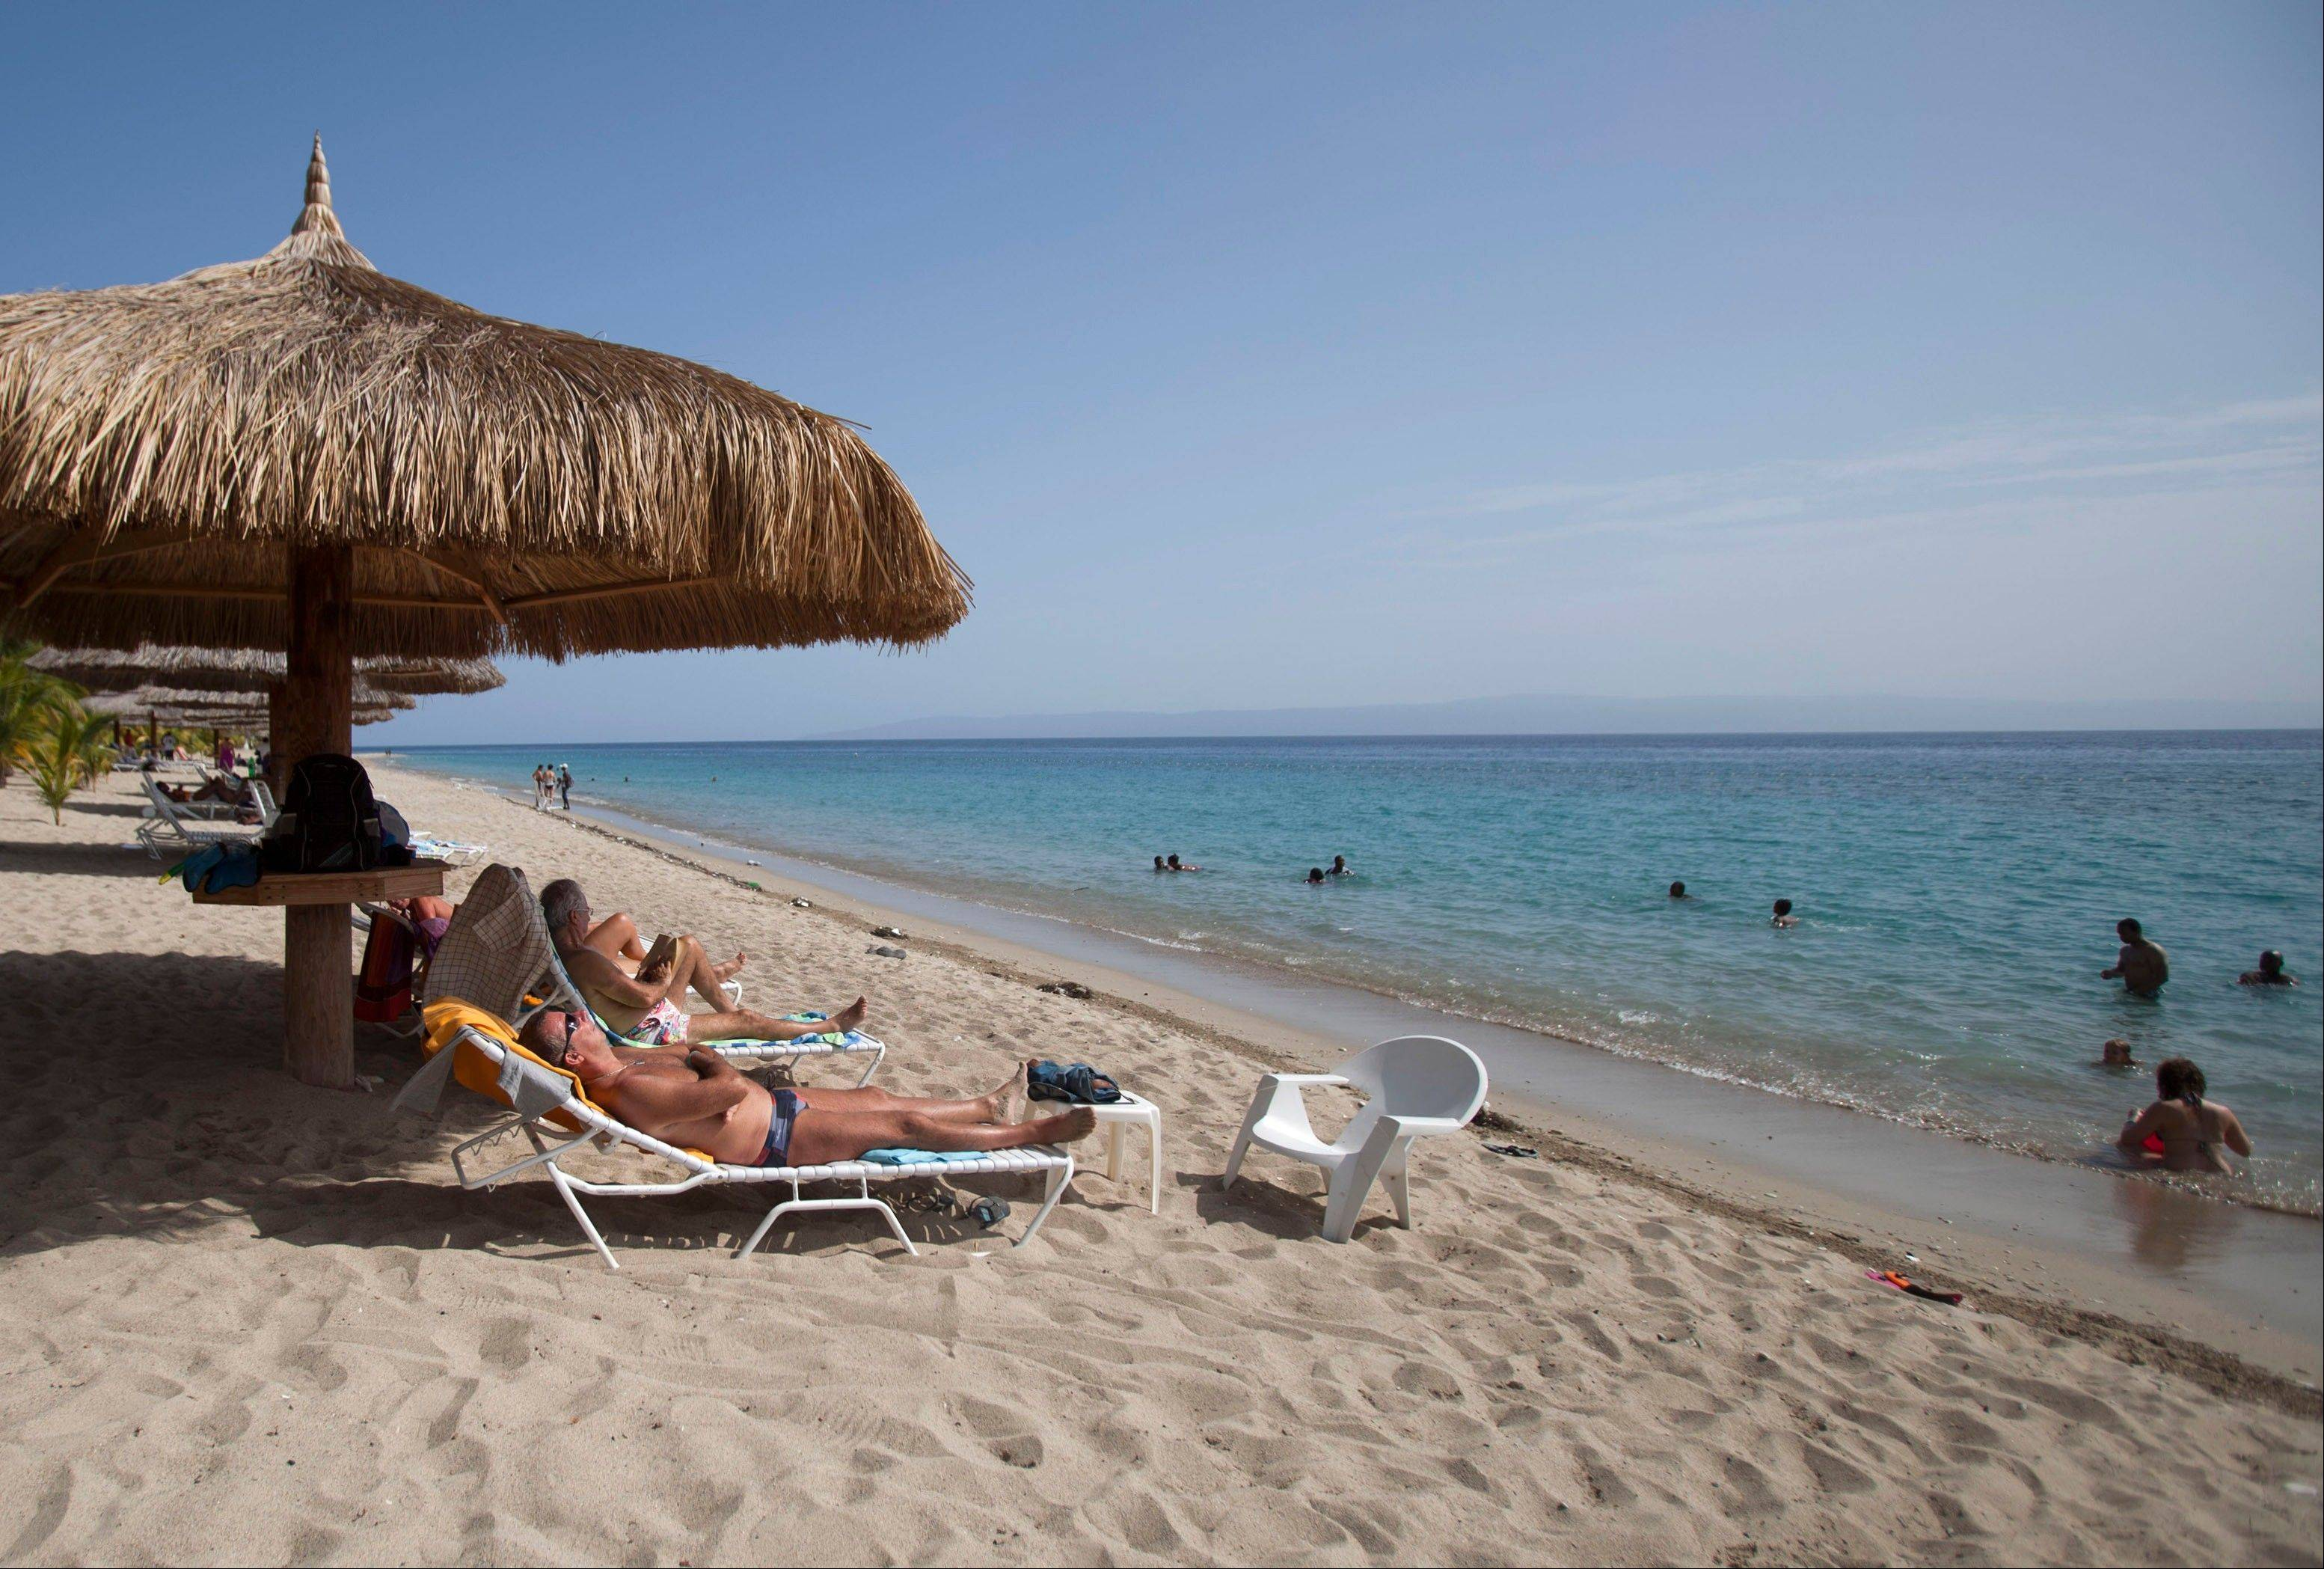 Tourists rest seaside while others wade in the ocean waters at the Club Indigo beach resort in Montrouis, Haiti.